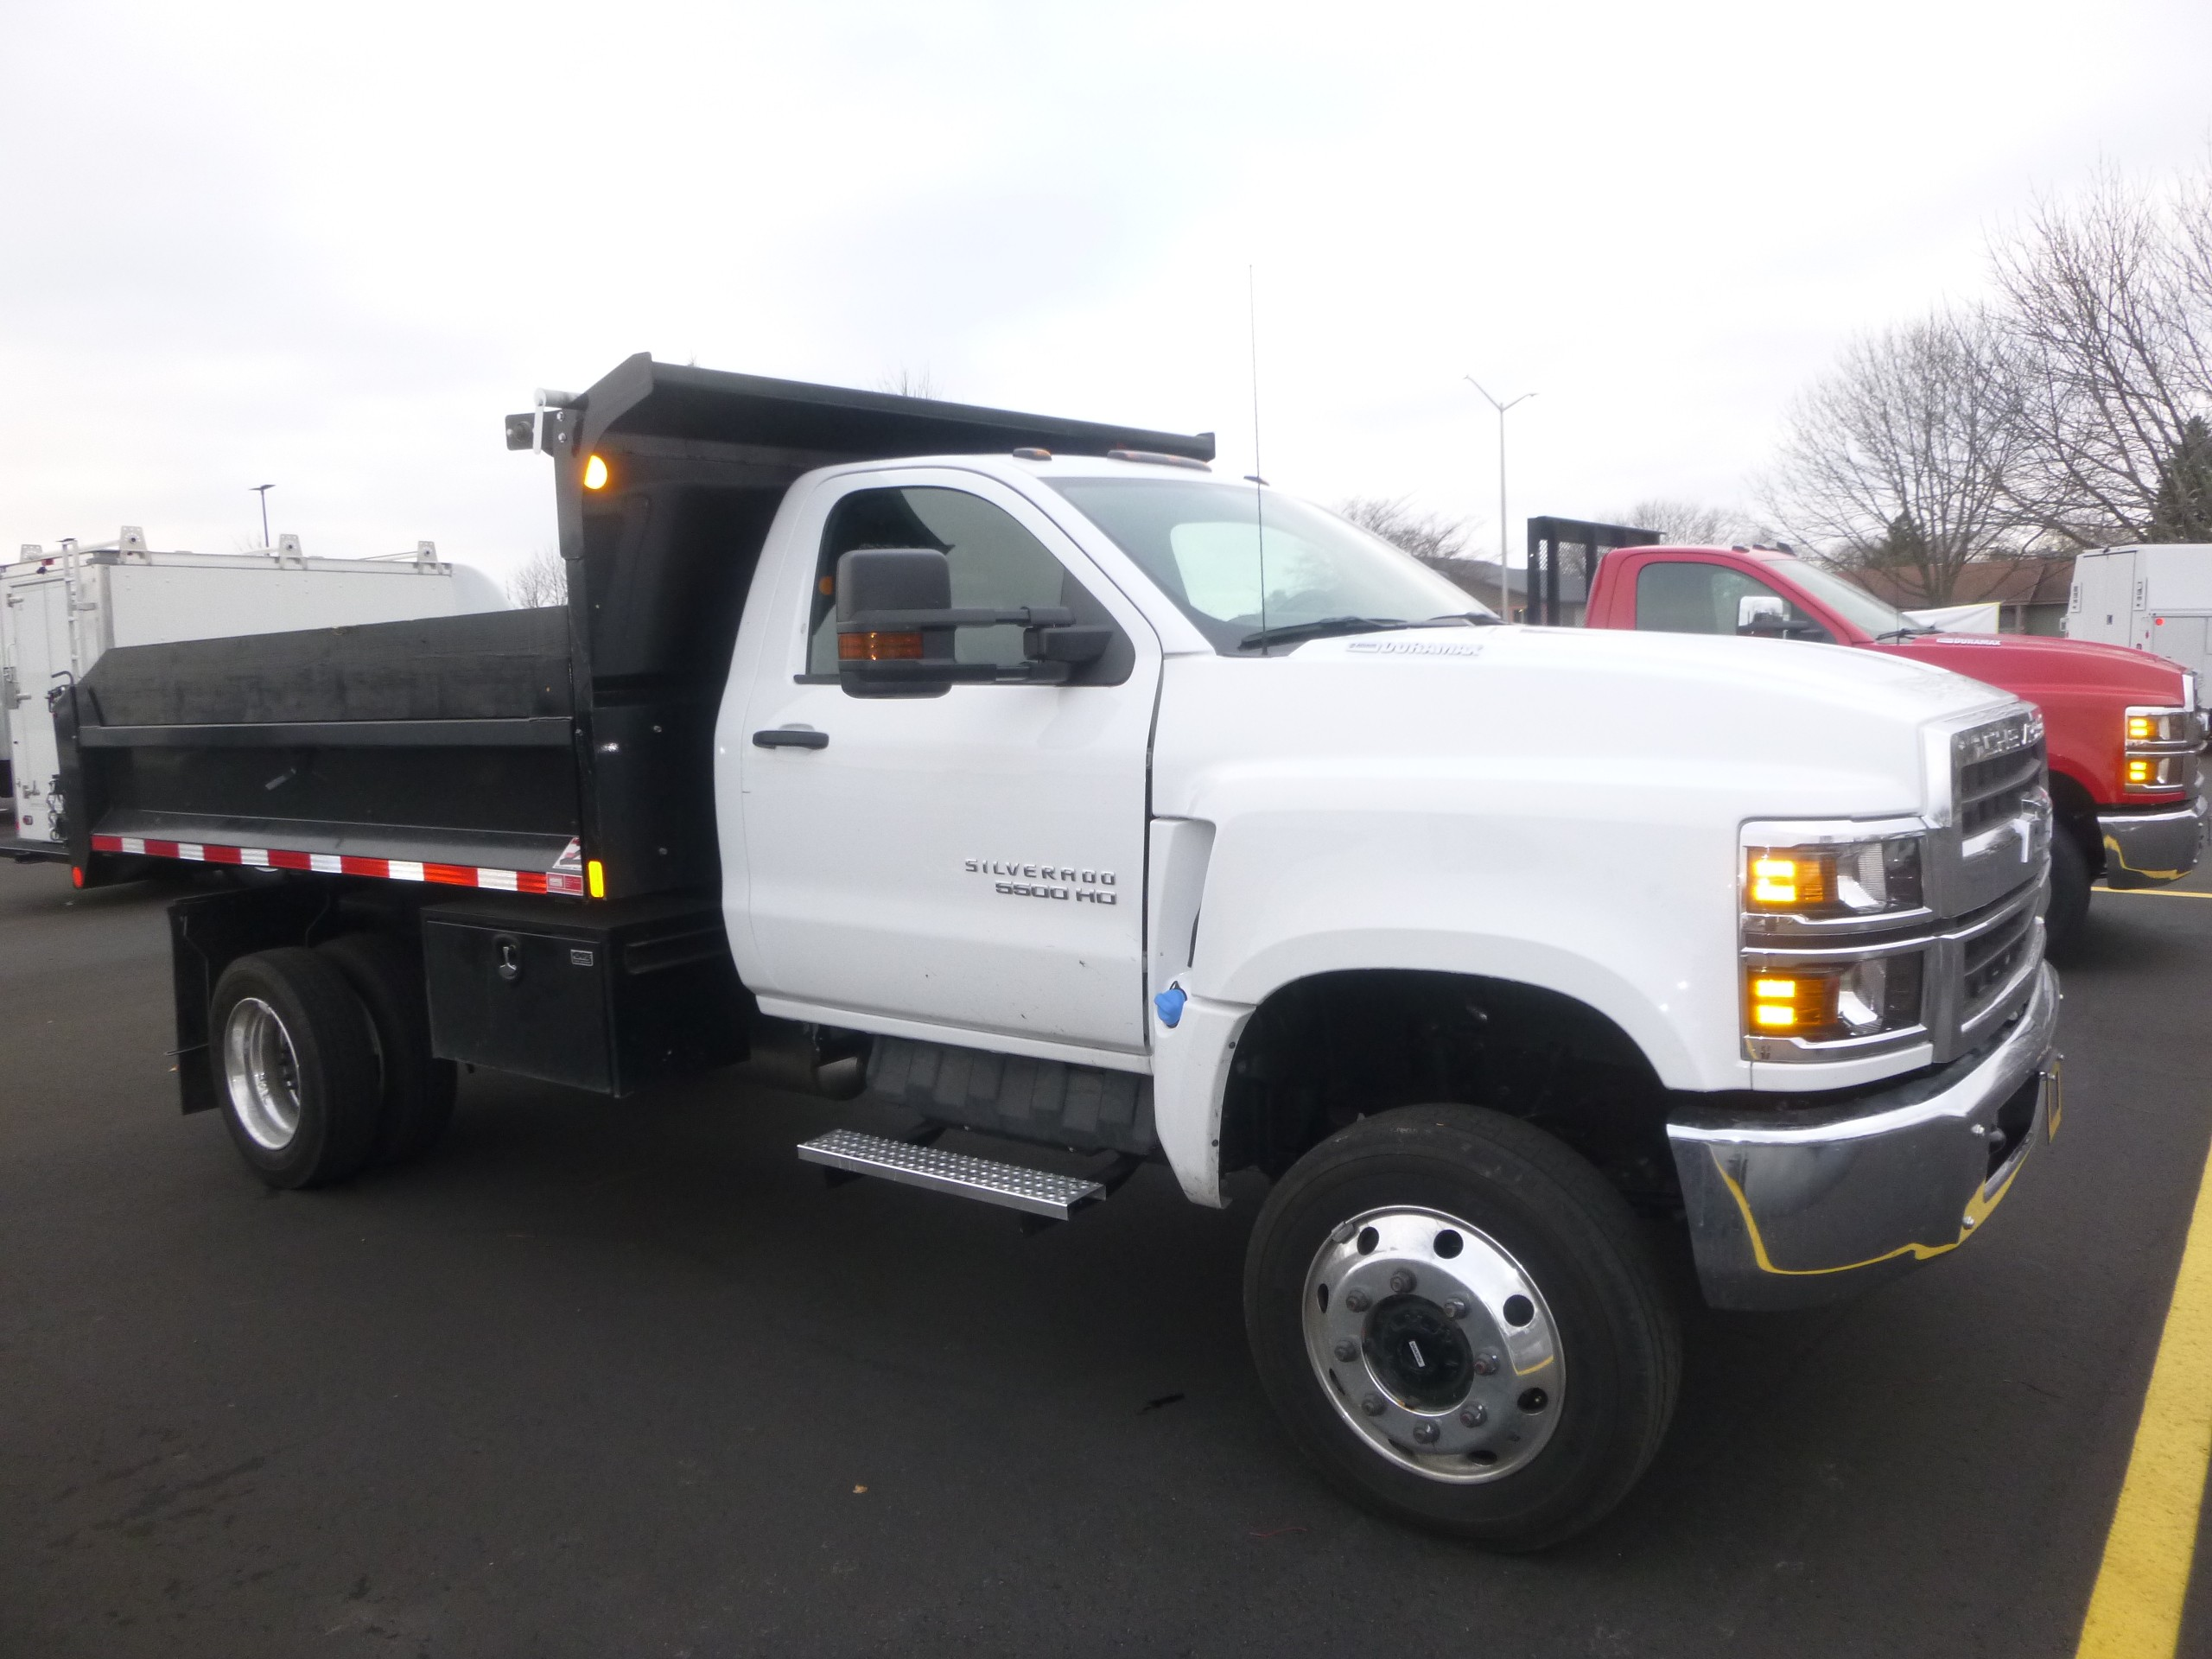 Used, 2019, Chevrolet, Chevy 5500 4x4, Dump Trucks